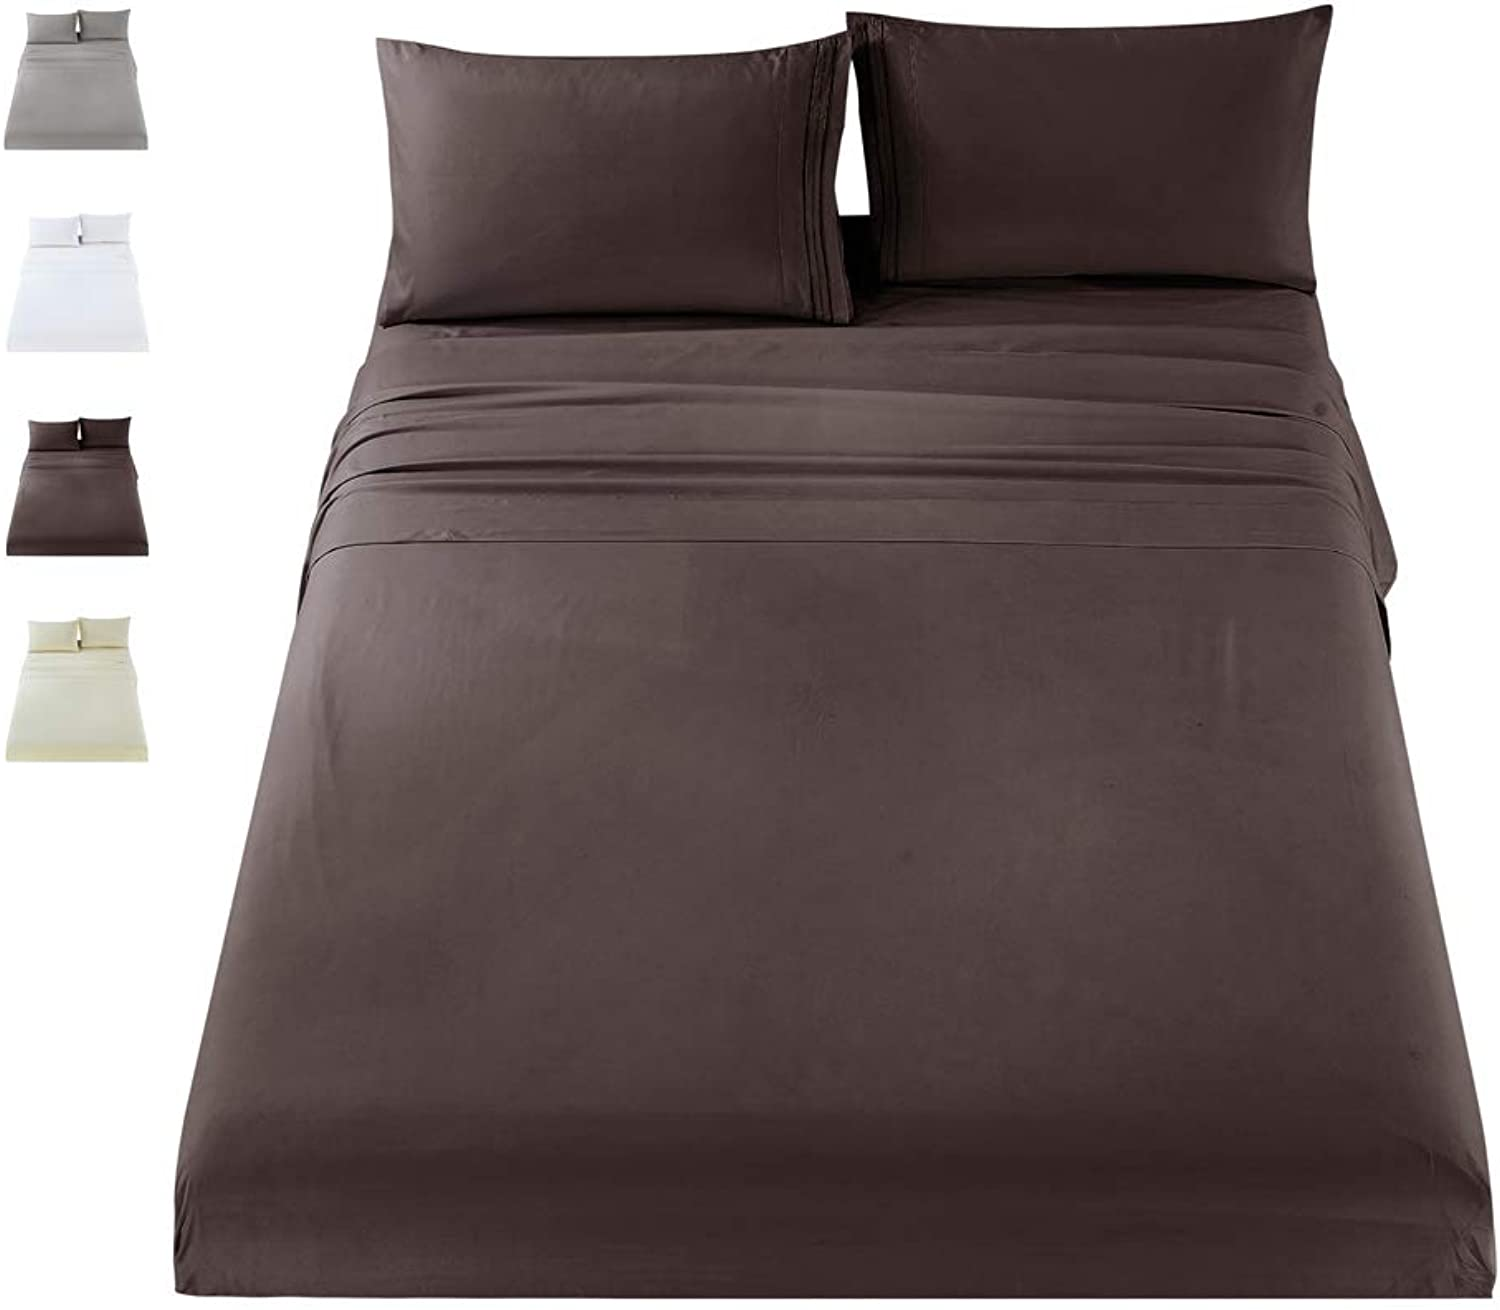 MUKKA 3 Pieces Brown Hypoallergenic Embroidered Brushed Super Soft Microfiber 1800 Thread Count Luxury Egyptian Bed Sheets Set,Twin - Wrinkle, Fade, Stain Resistant